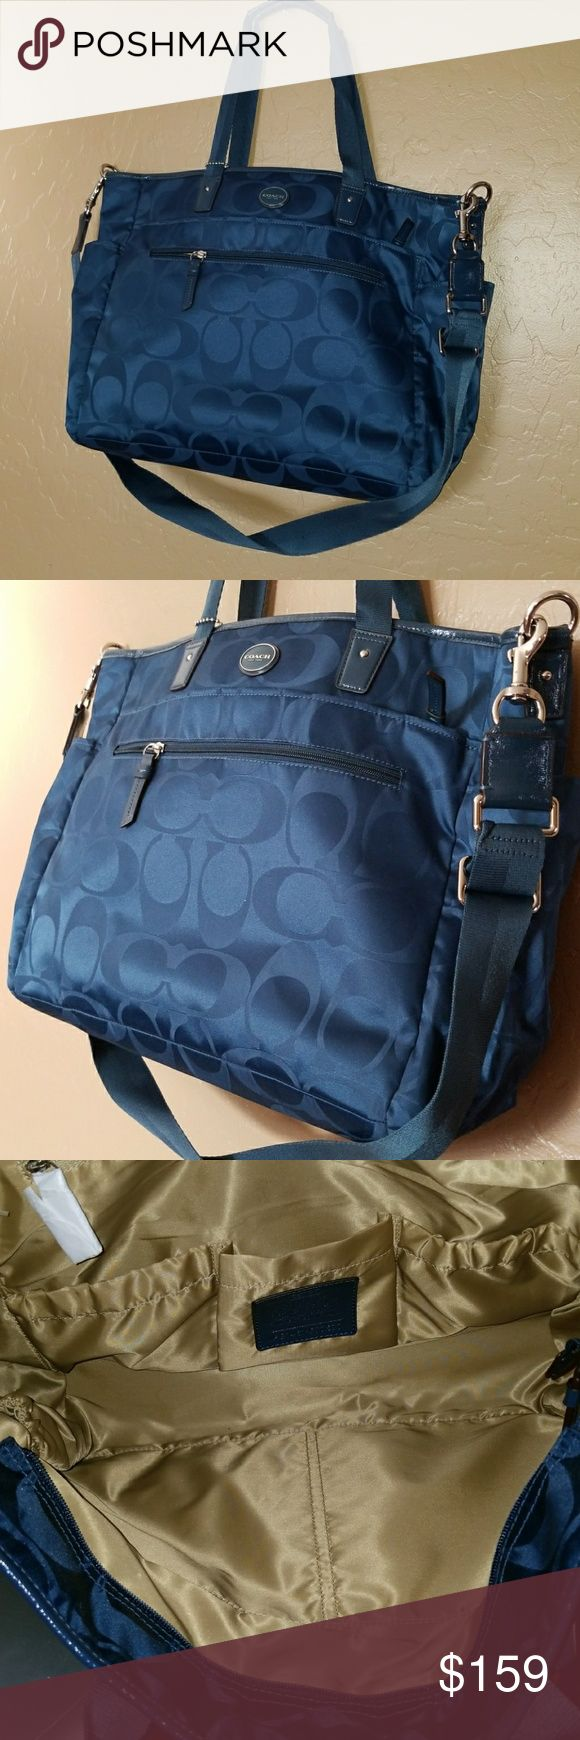 Coach diaper bag Nice nylon and leather coach diaper bag brand new with out tags. Lots of storage and super clean as it should be. Coach Bags Baby Bags